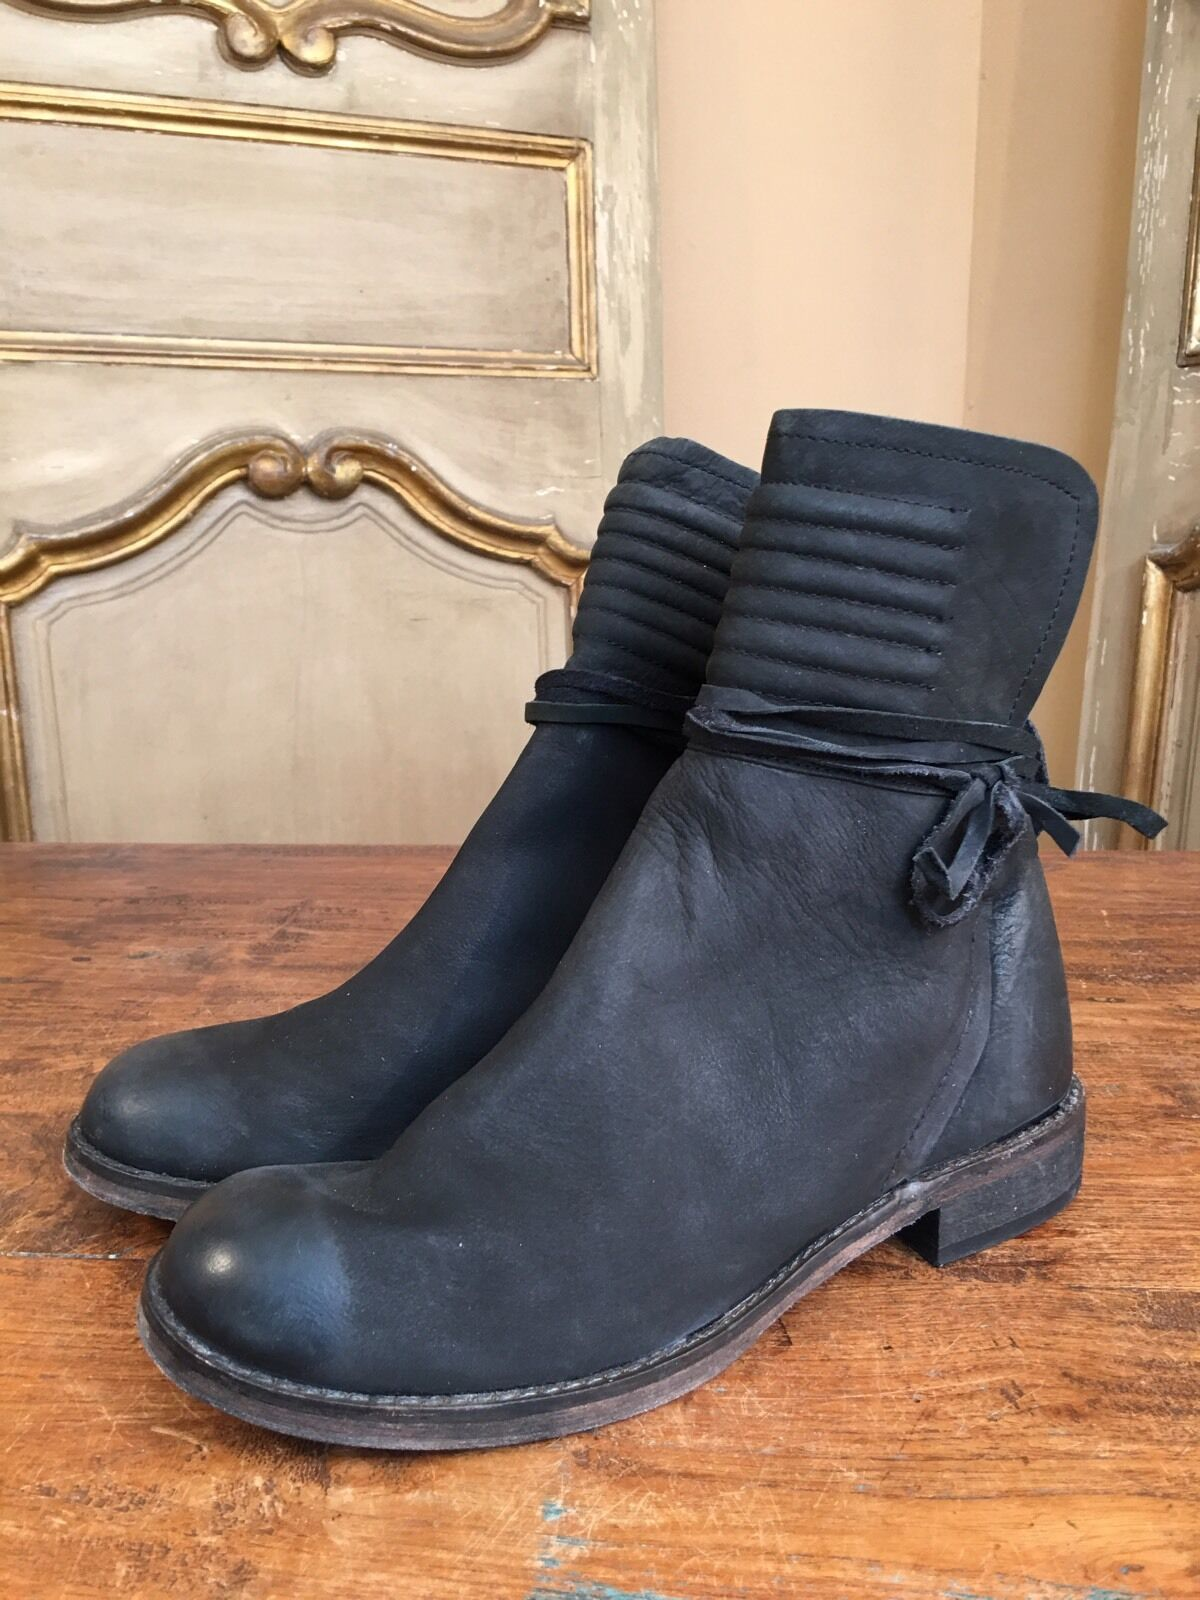 New Free People Ankle Campus Womens Hiker Boots In Size 7.5 Euro 38 Black Suede